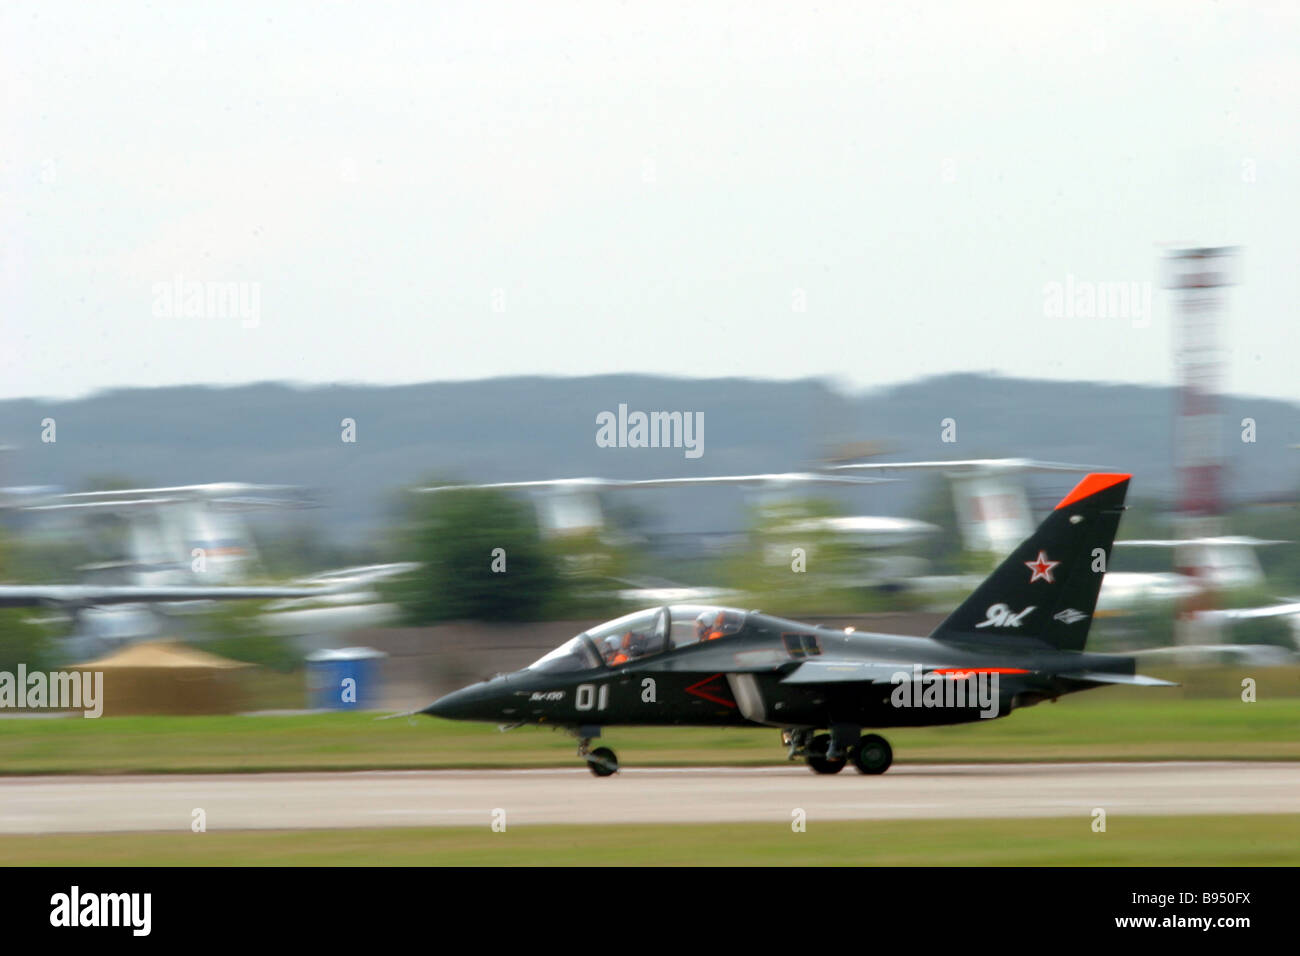 A Yak 130 combat trainer at the MAKS 2005 Air Show - Stock Image